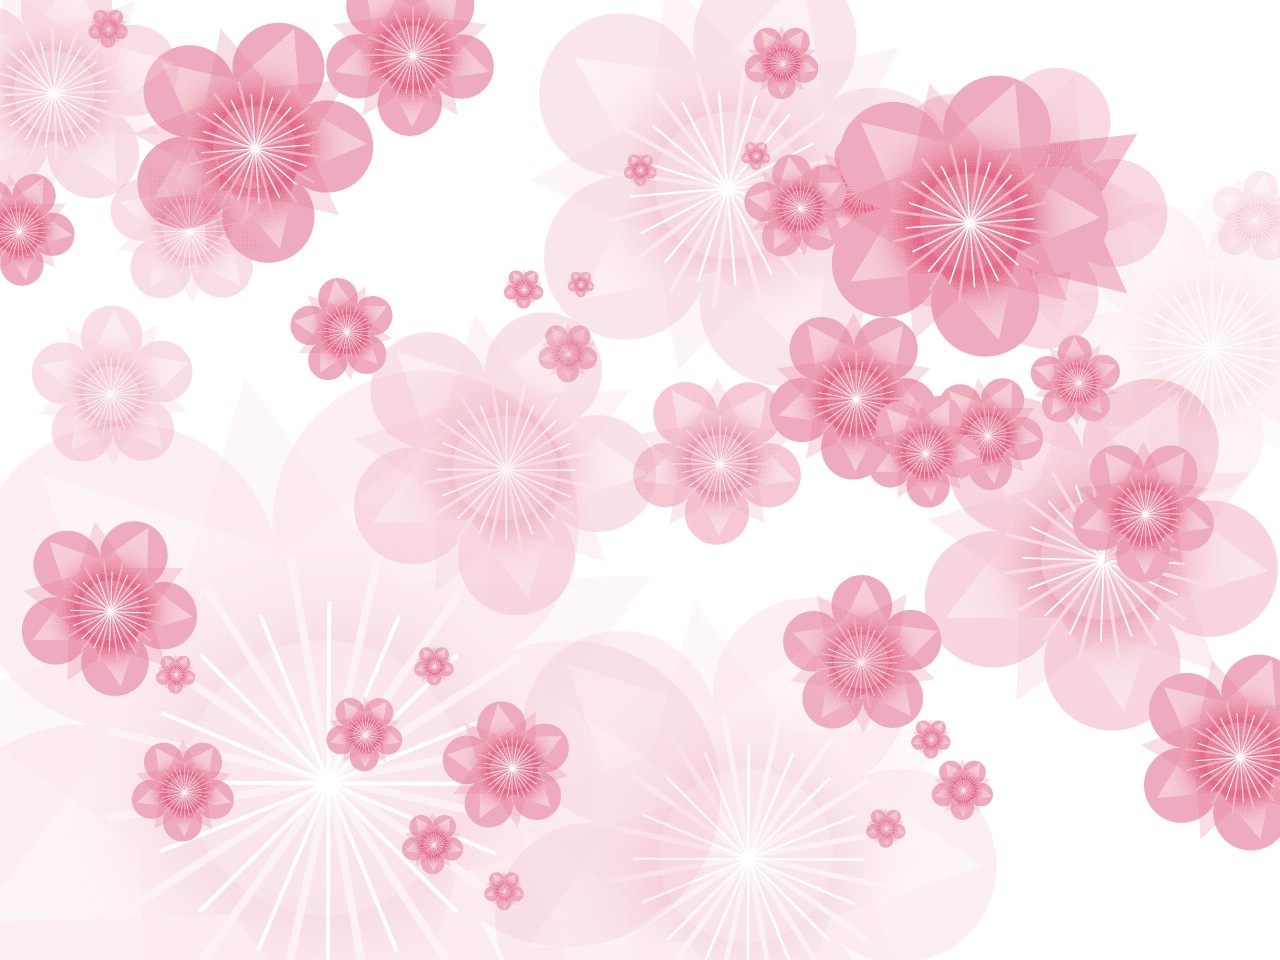 pink floral background jpg - photo #6